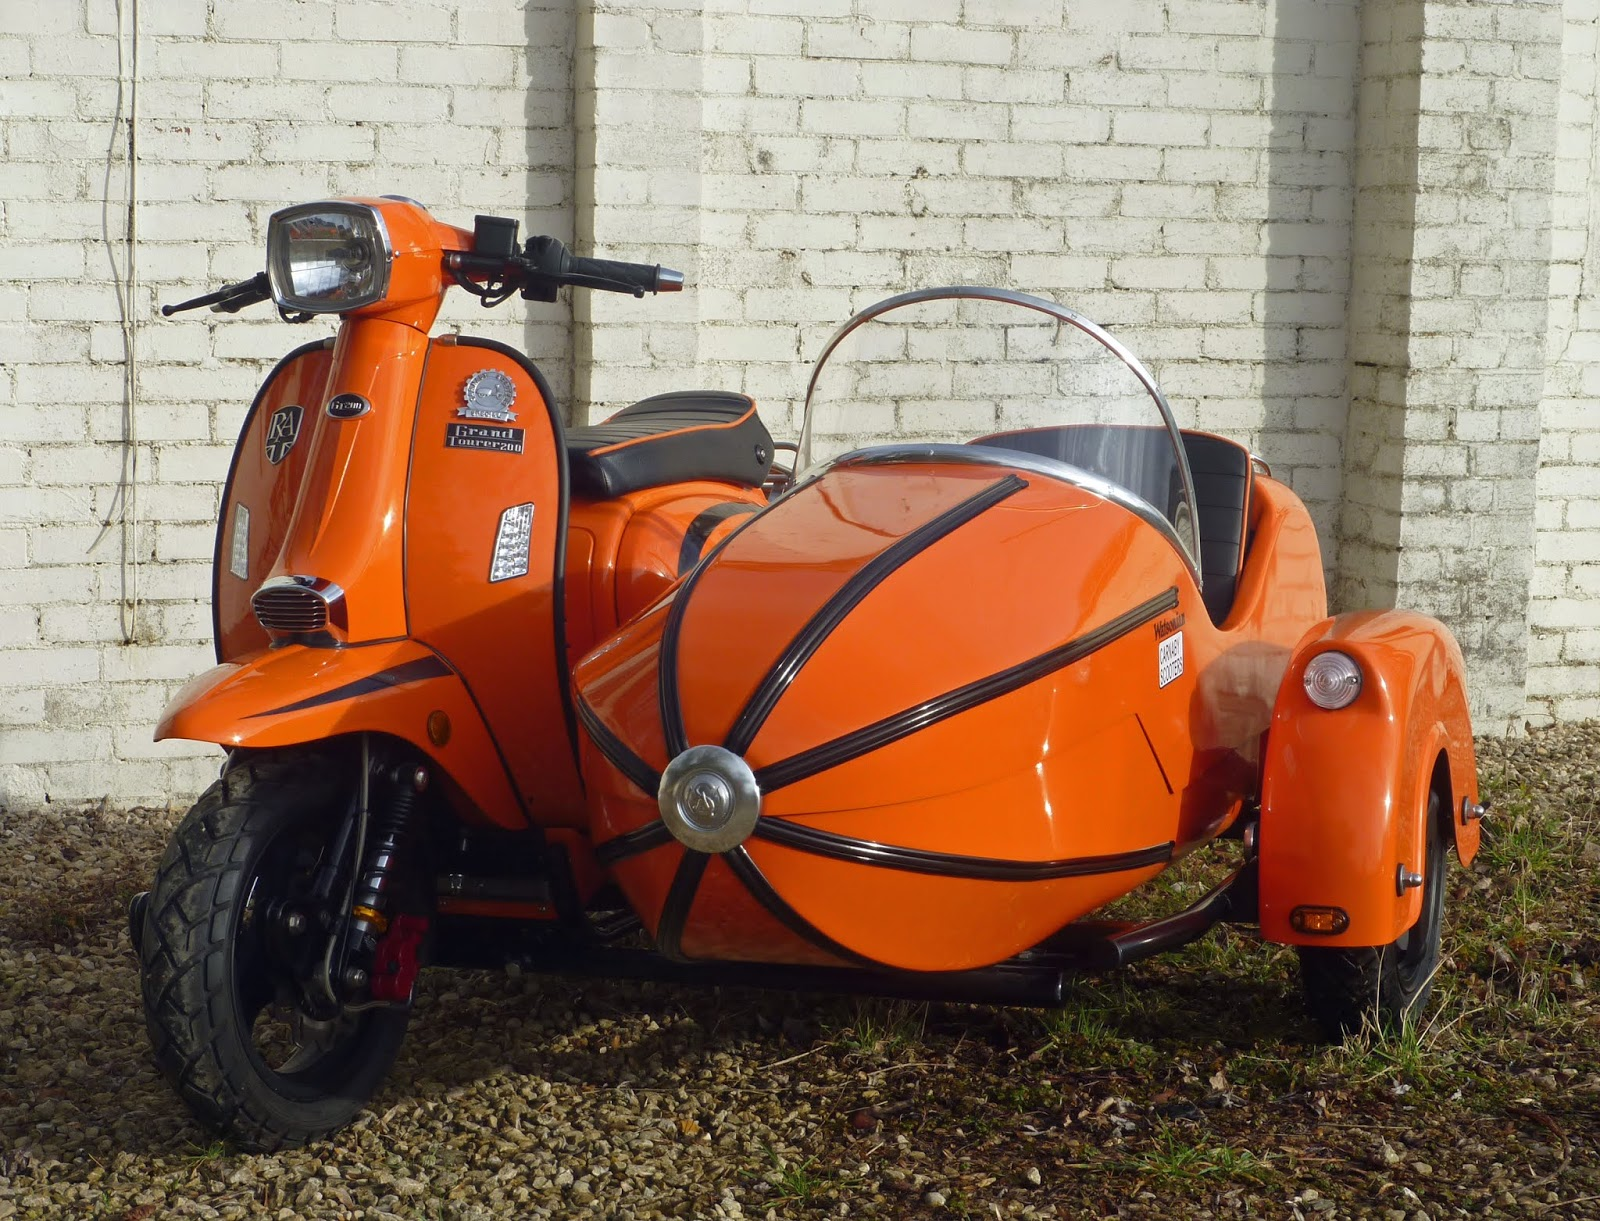 Watsonian's Royal scooter sidecar